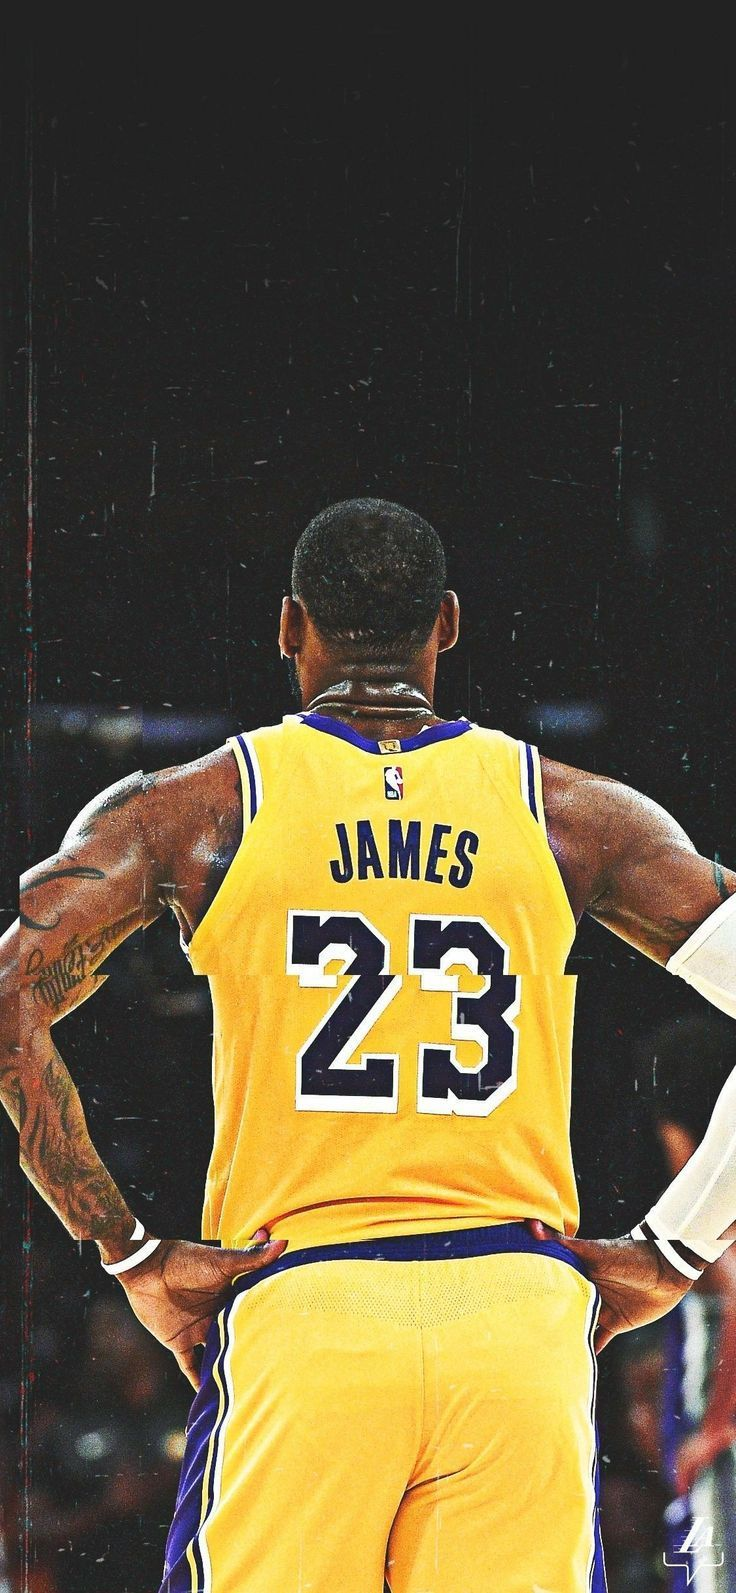 Nba Youngboy Wallpaper Iphone Cartoon Nba Youngboy Wallpaper Iphone In 2020 Lebron James Lakers Lebron James Wallpapers Nba Lebron James